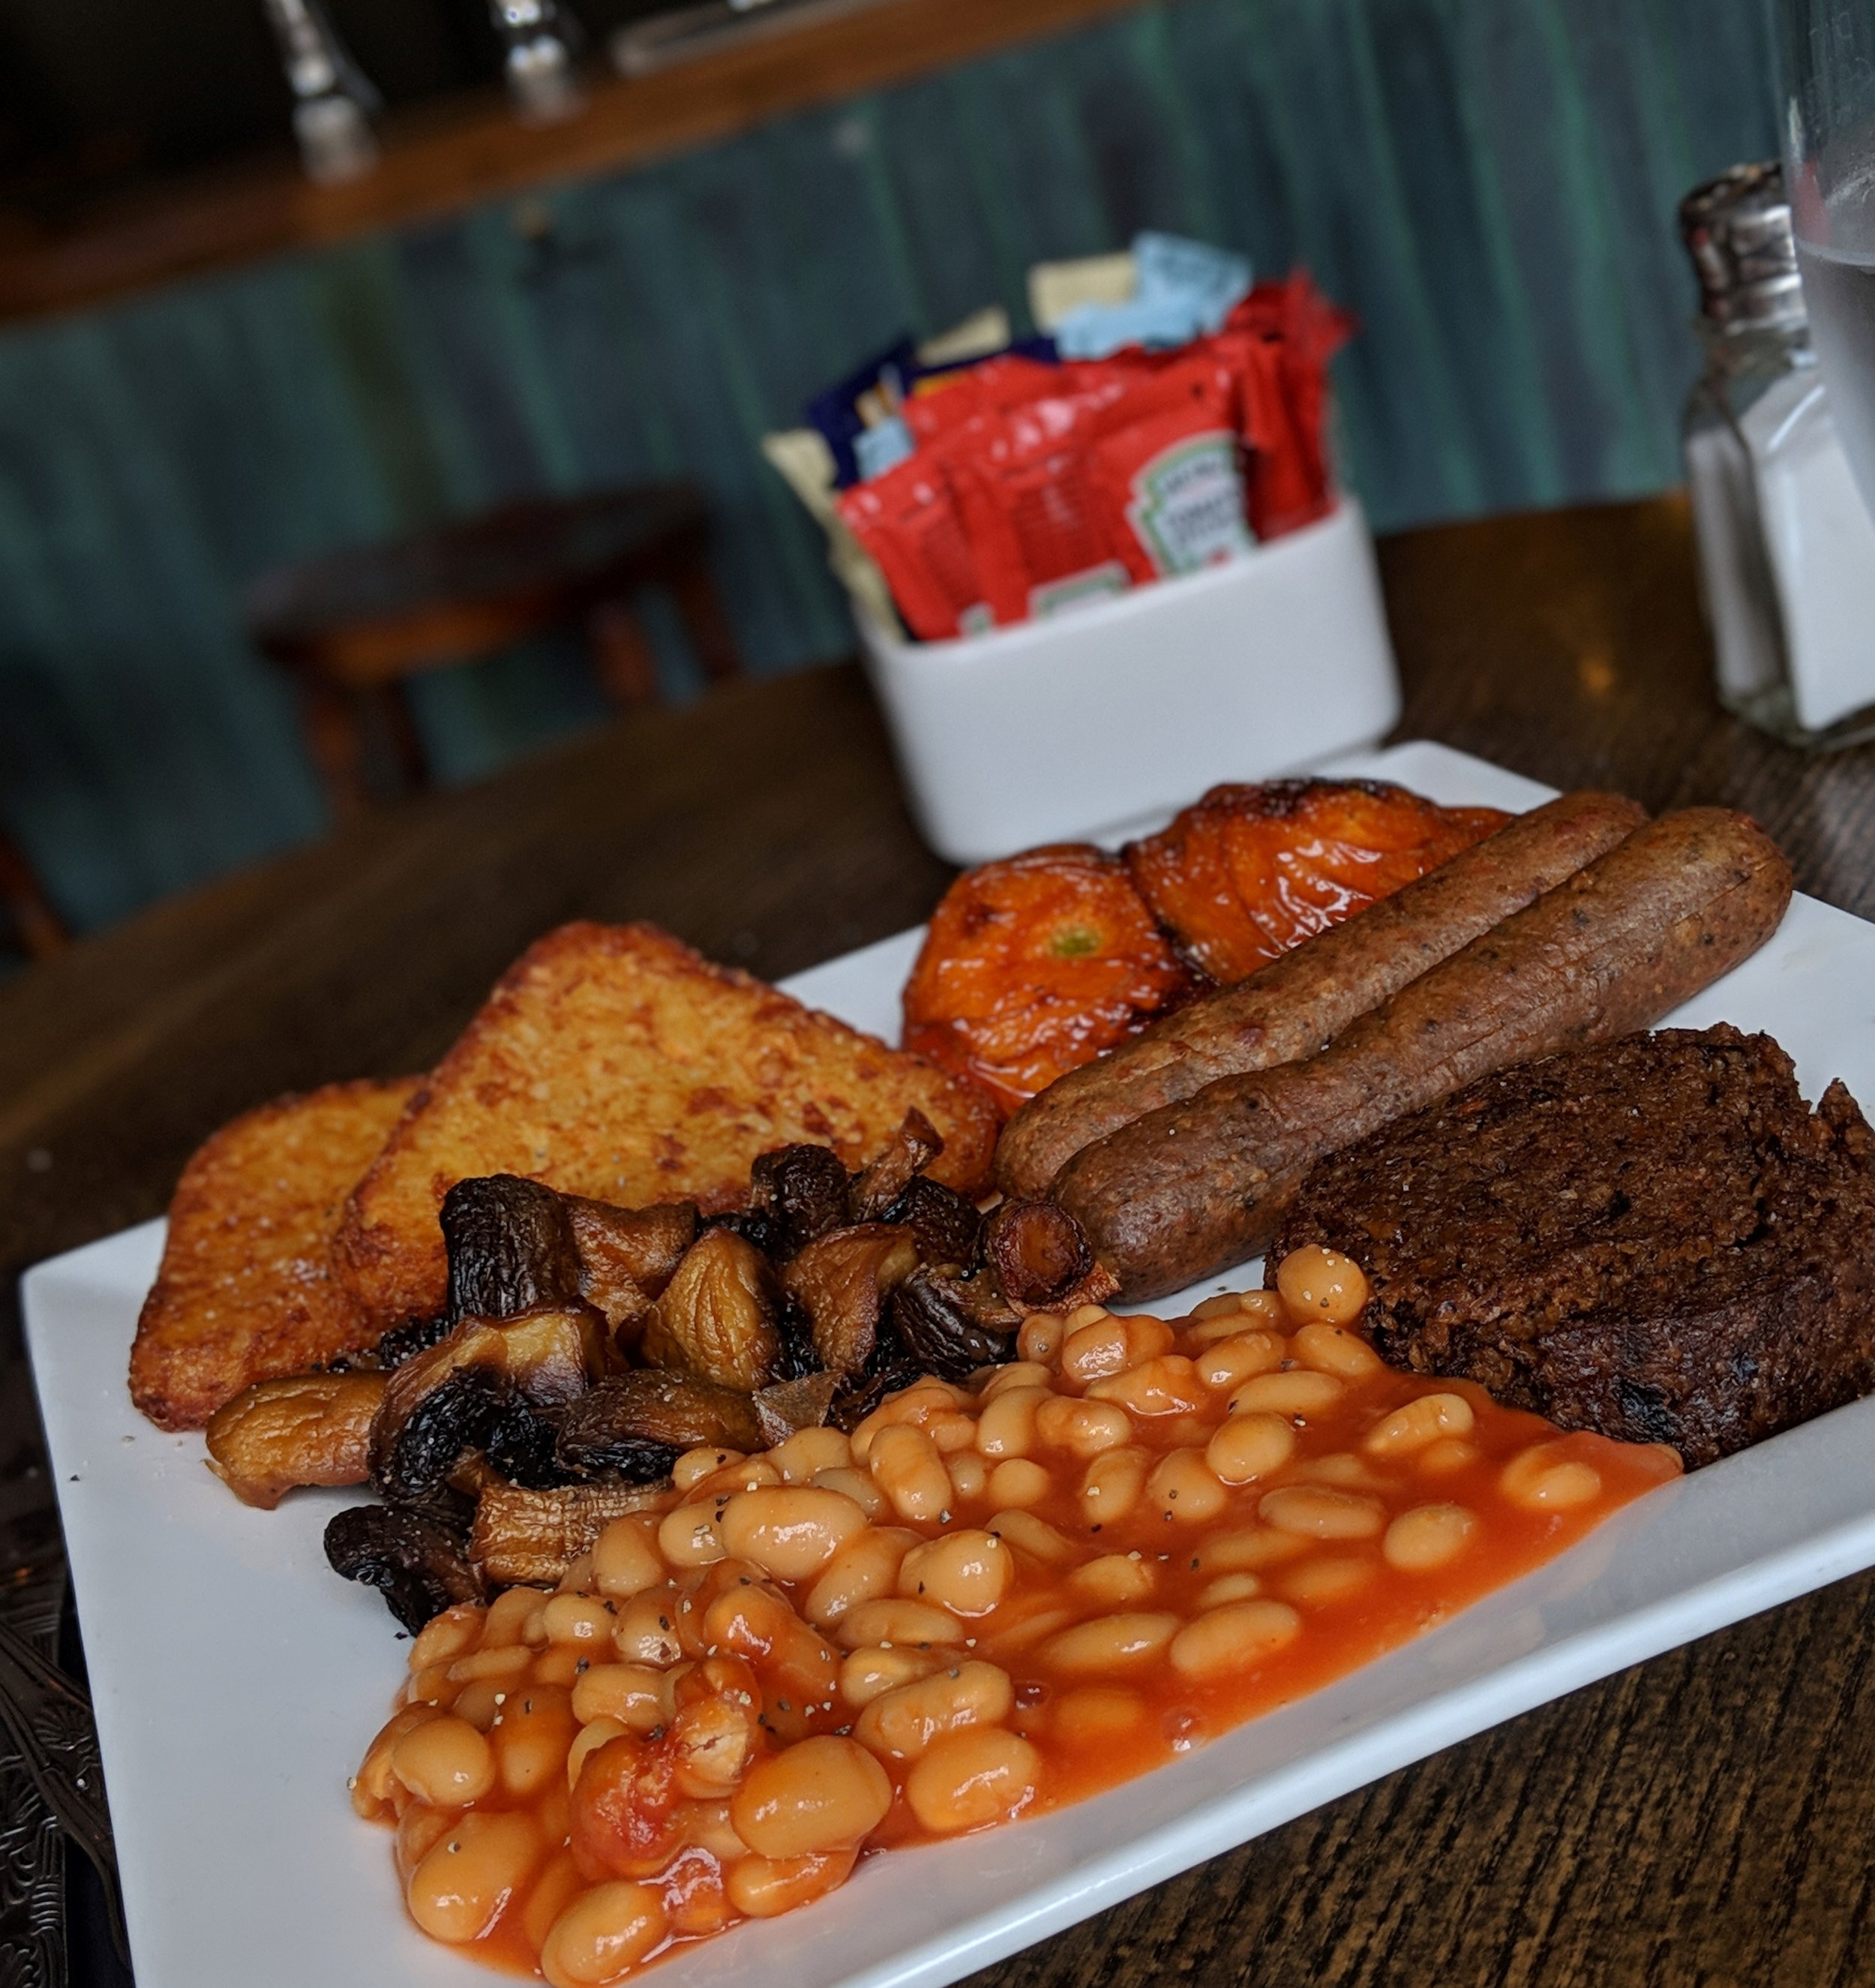 Now that is what I call The Full English!